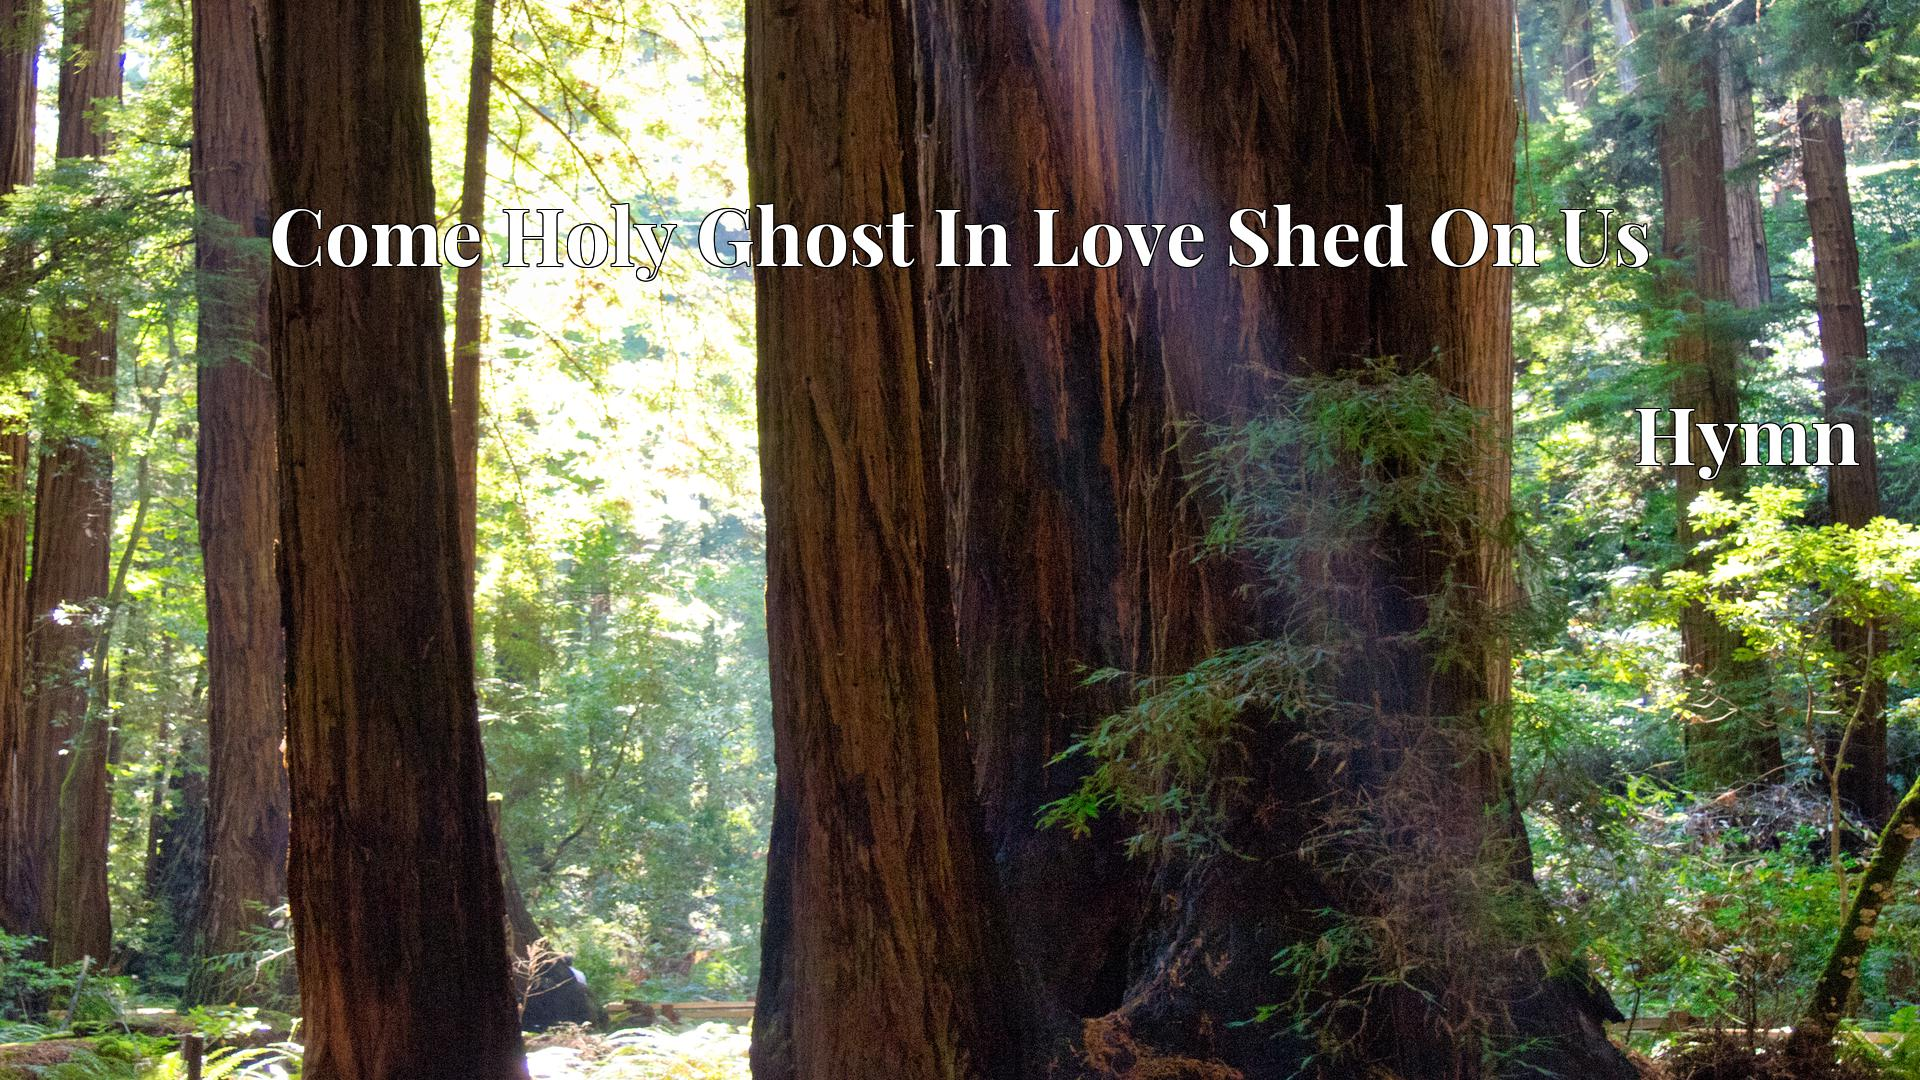 Come Holy Ghost In Love Shed On Us Hymn Lyric